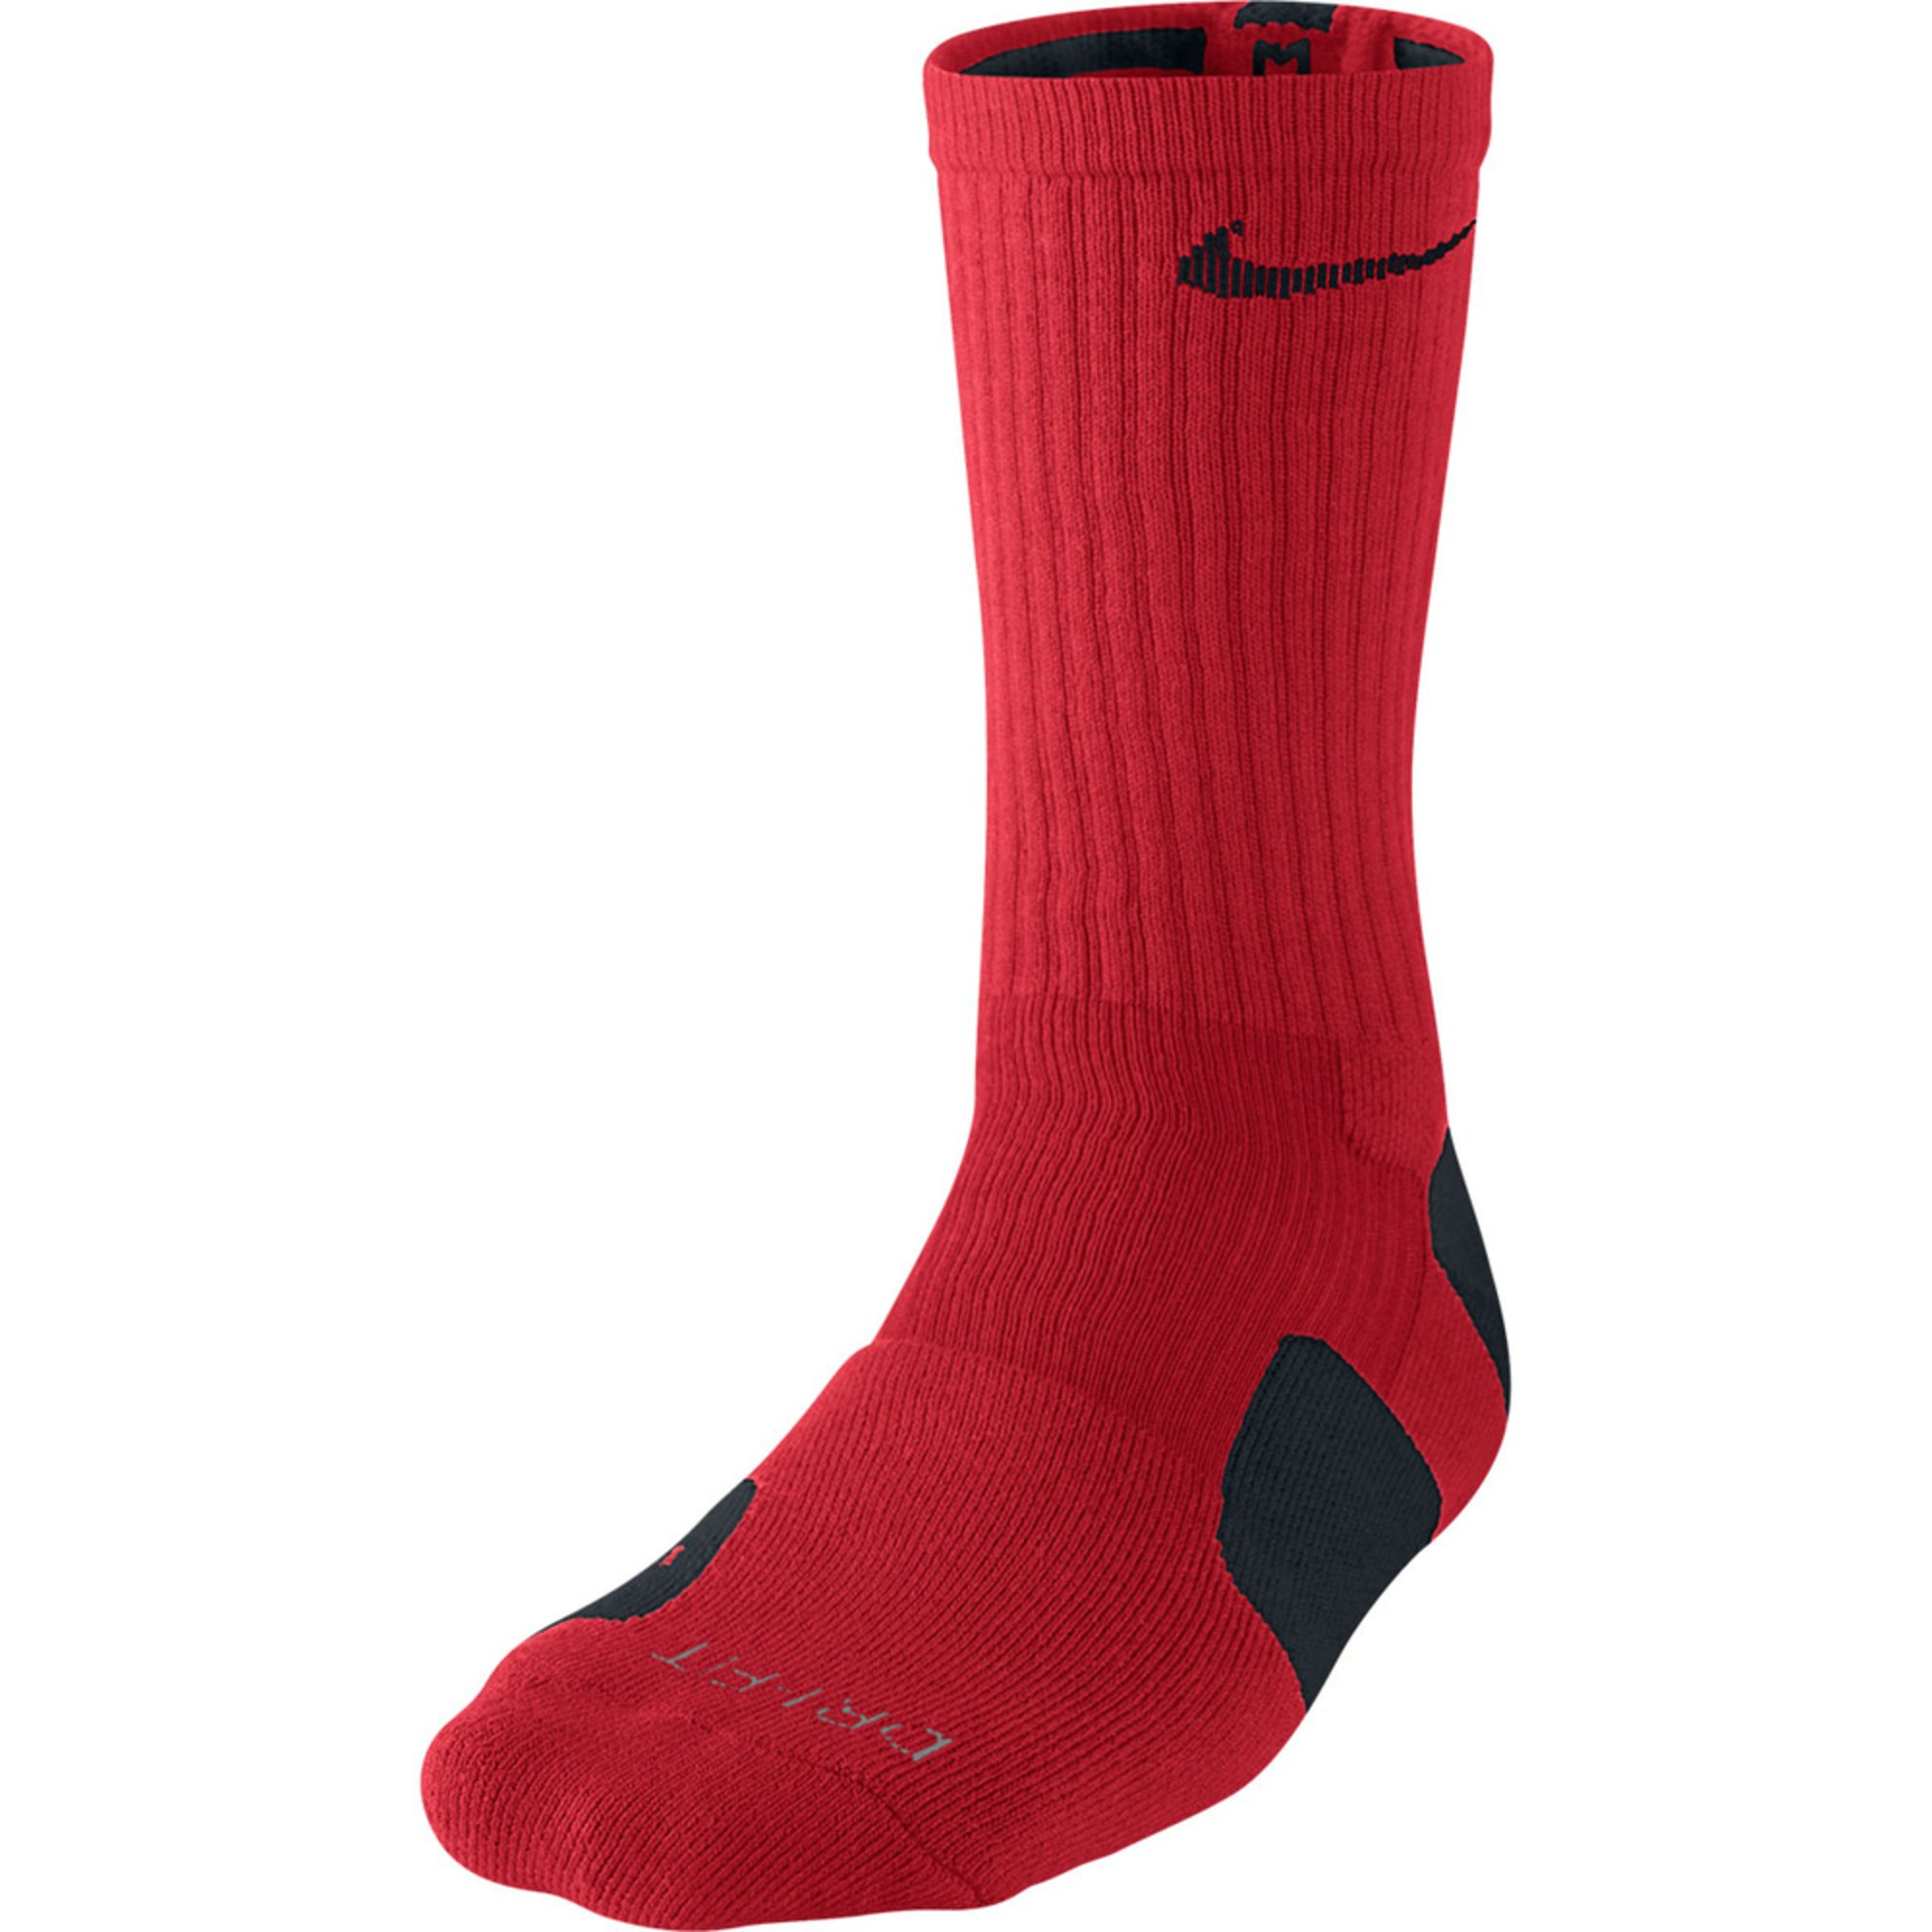 Free shipping BOTH ways on nike socks from our vast selection of styles. Fast delivery, and 24/7/ real-person service with a smile. Click or call